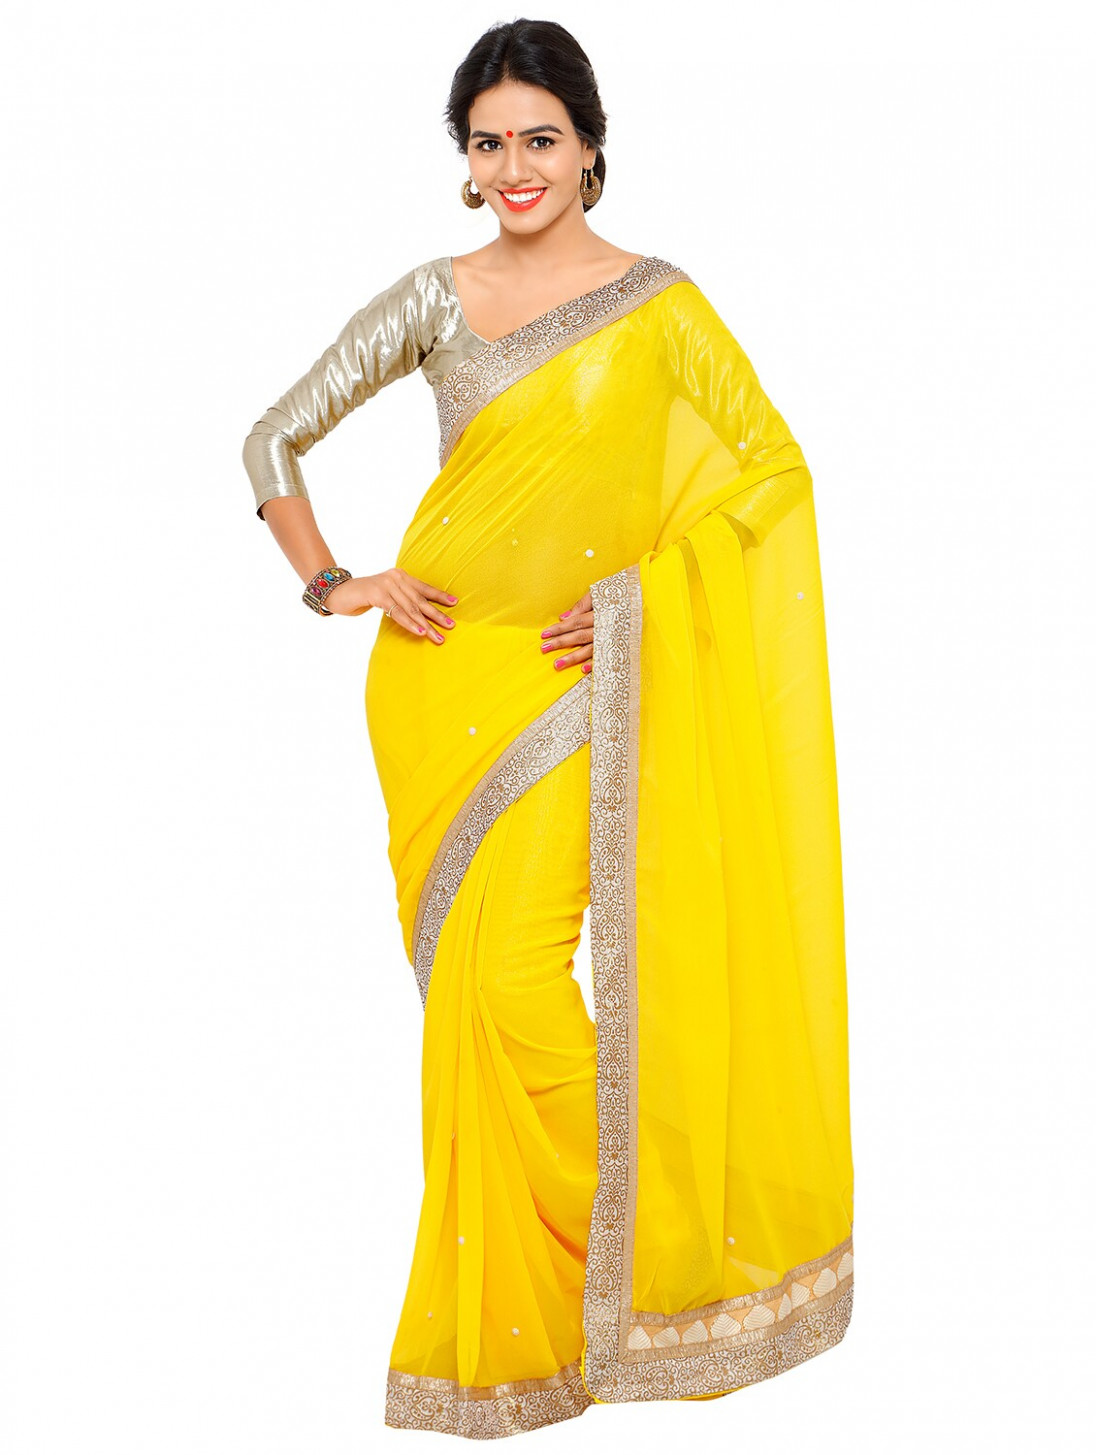 Buy online Stone Embellished Yellow Saree With Blouse from